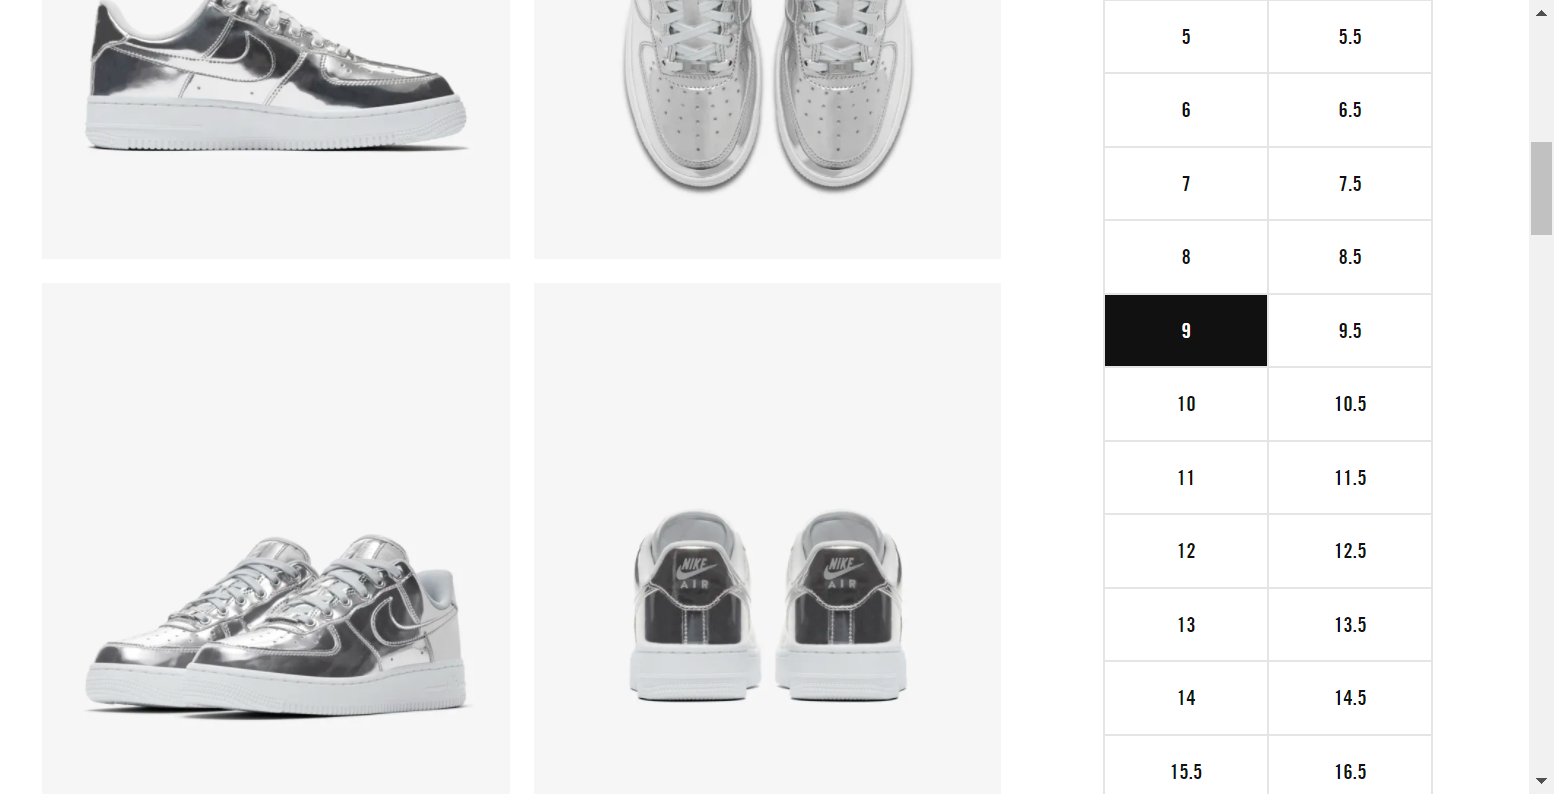 Round 3 - Clicking the desired shoe size selector